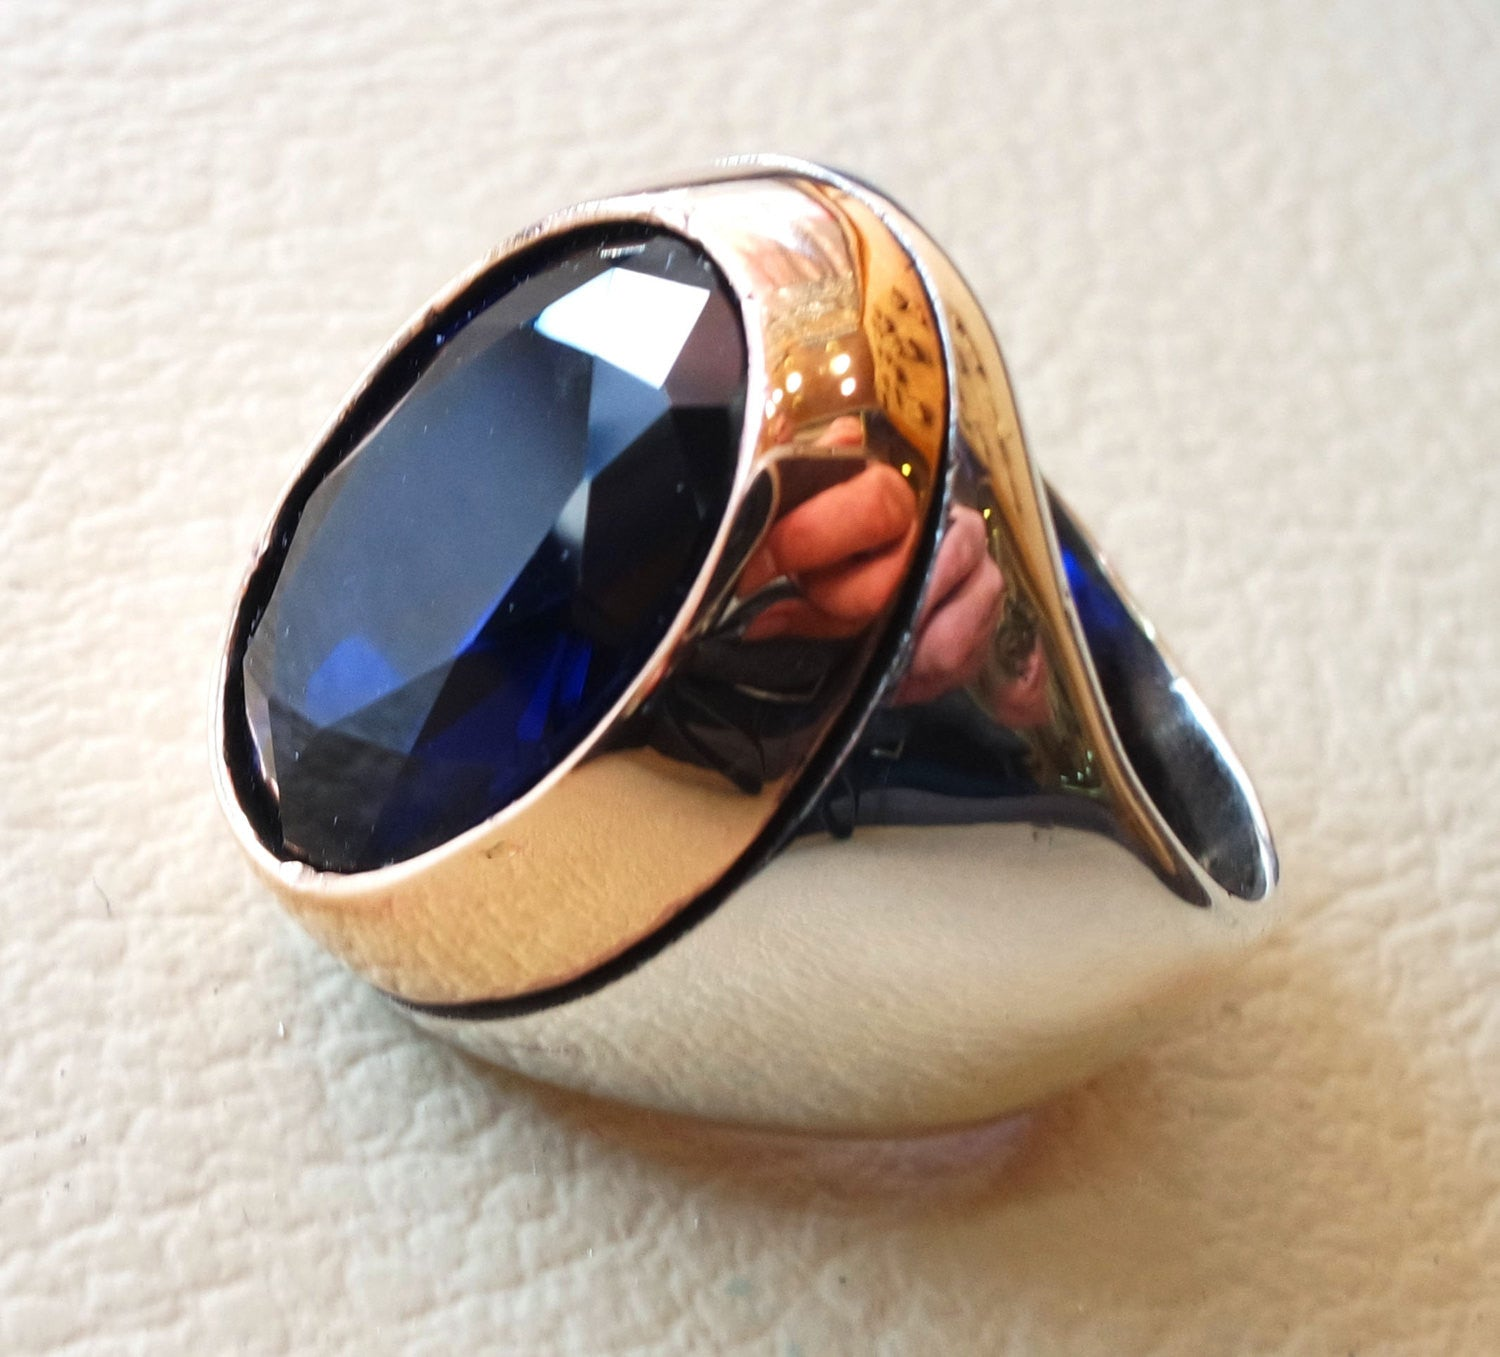 sapphire ring synthetic spinel stone identical to genuine gem men ring sterling silver 925 bronze frame huge gemstone any size jewelry